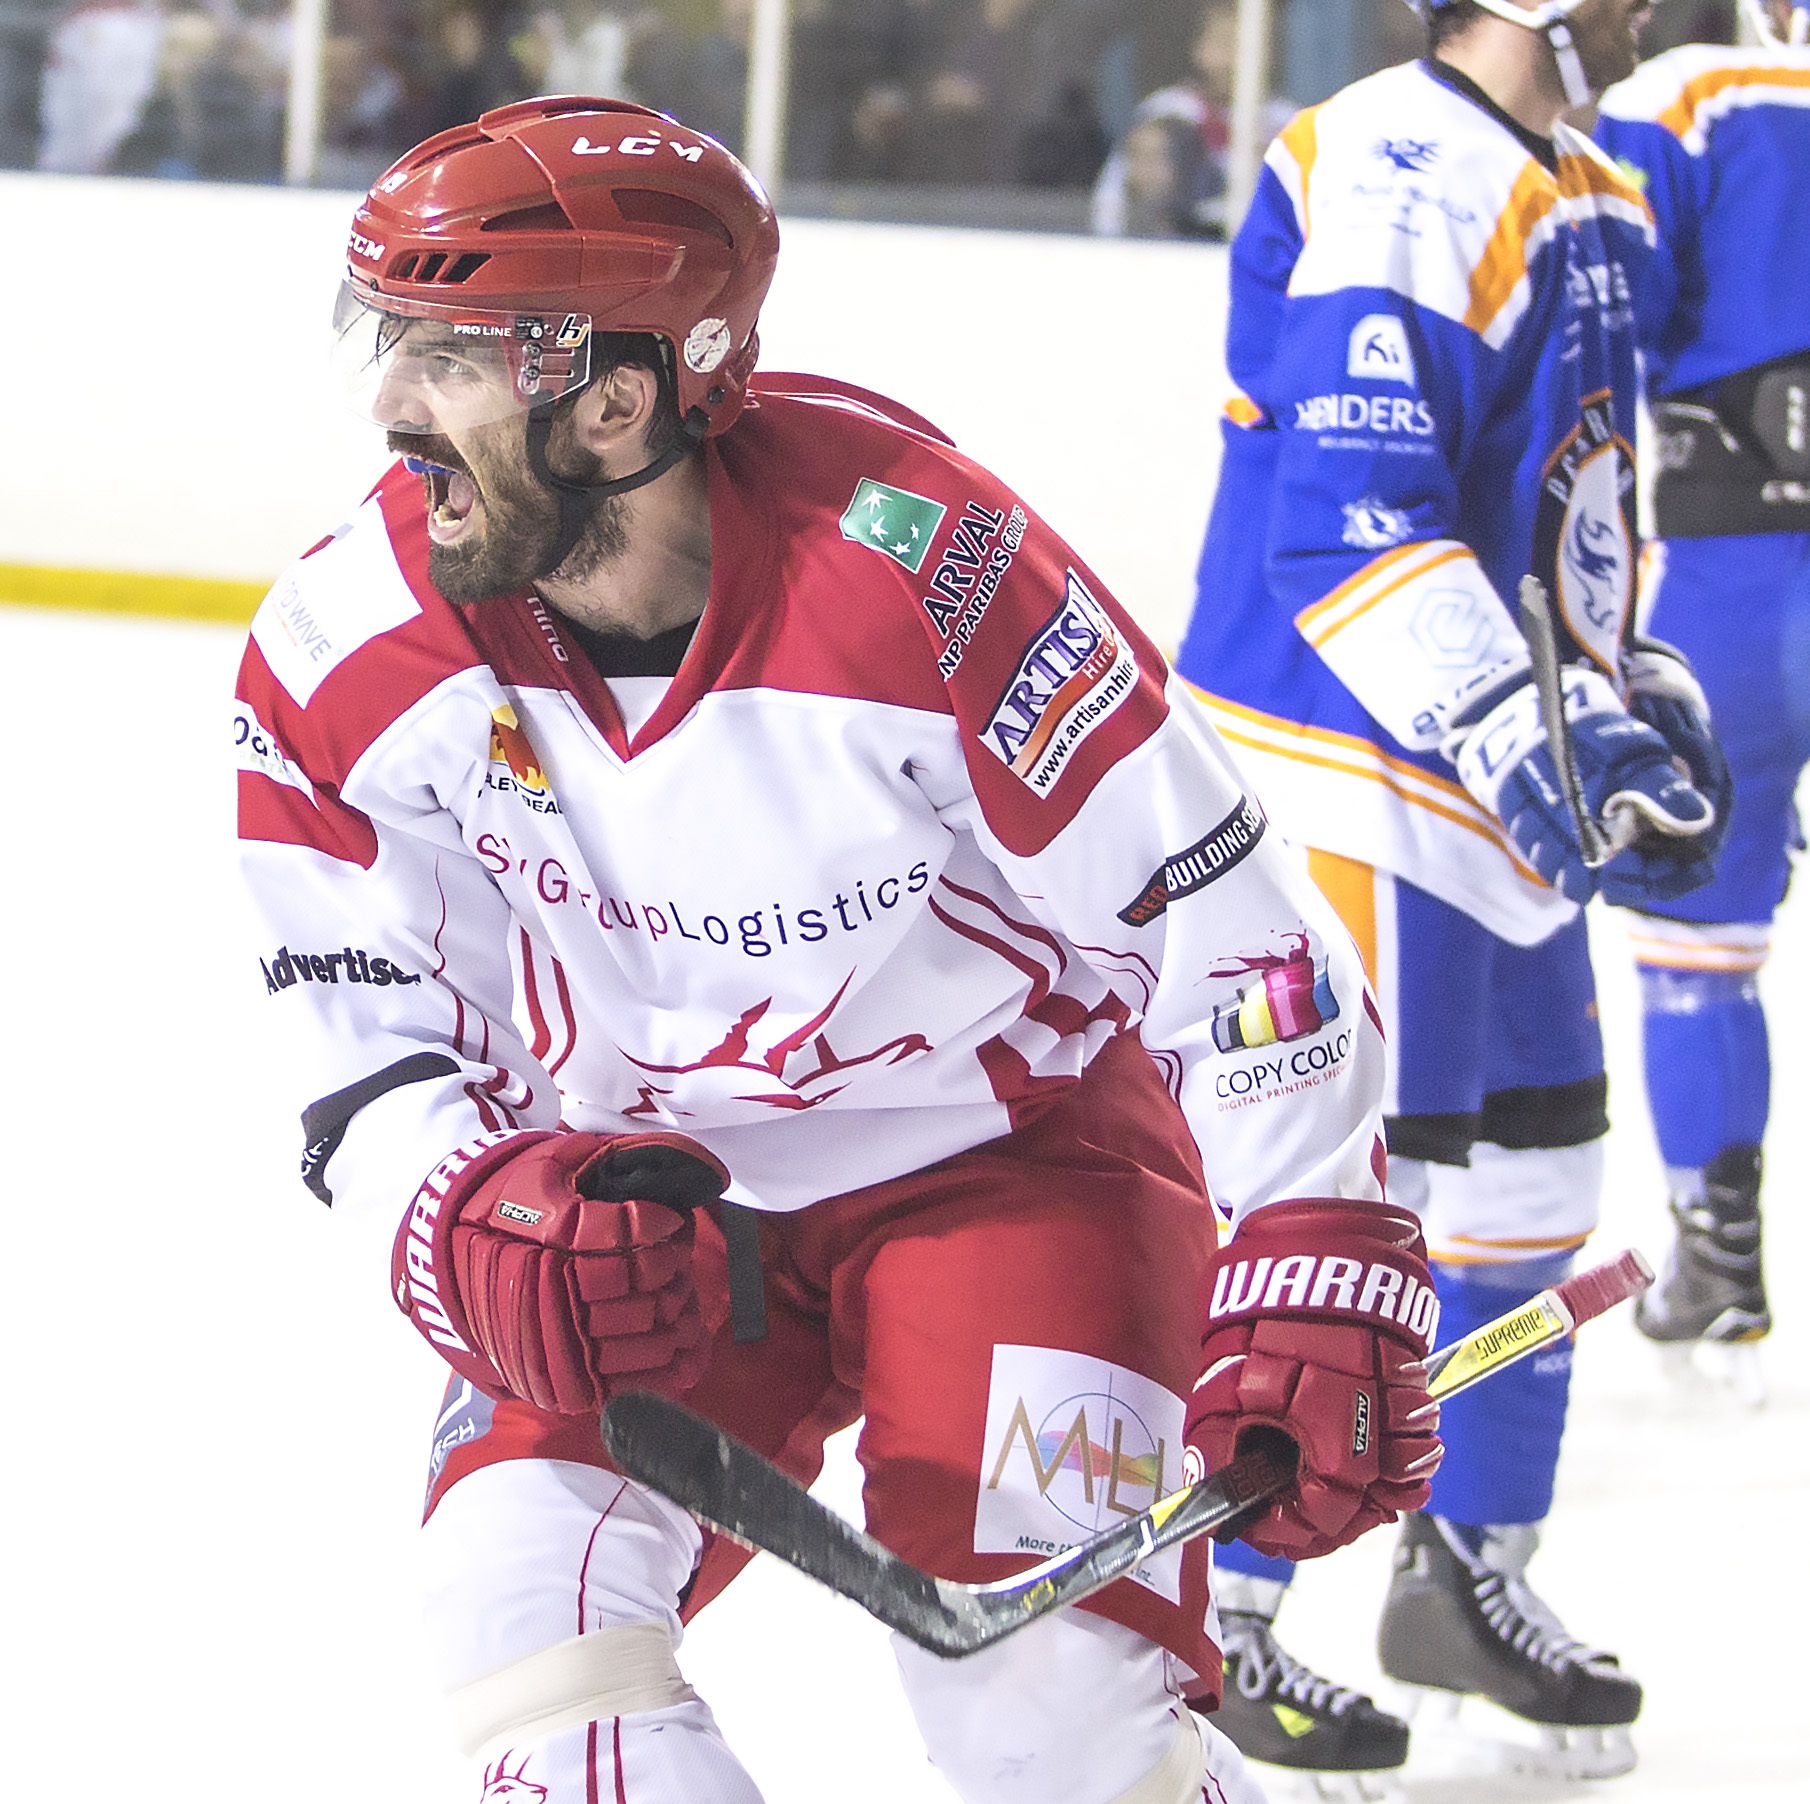 Swindon Wildcats Vs Peterborough Phantoms, Aaron Nell cheers after Cats score through jan kostal, Picture Ryan Ainscow 09.11.18.